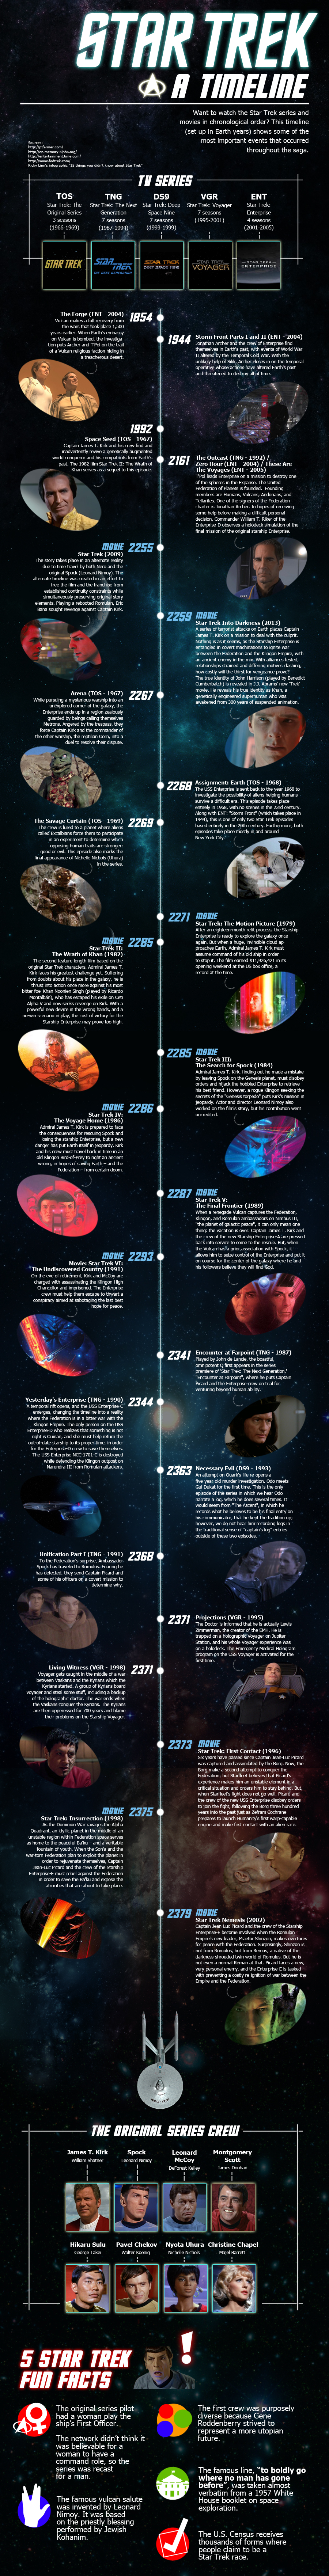 Star Trek Episodes Timeline For TV Shows & Movies